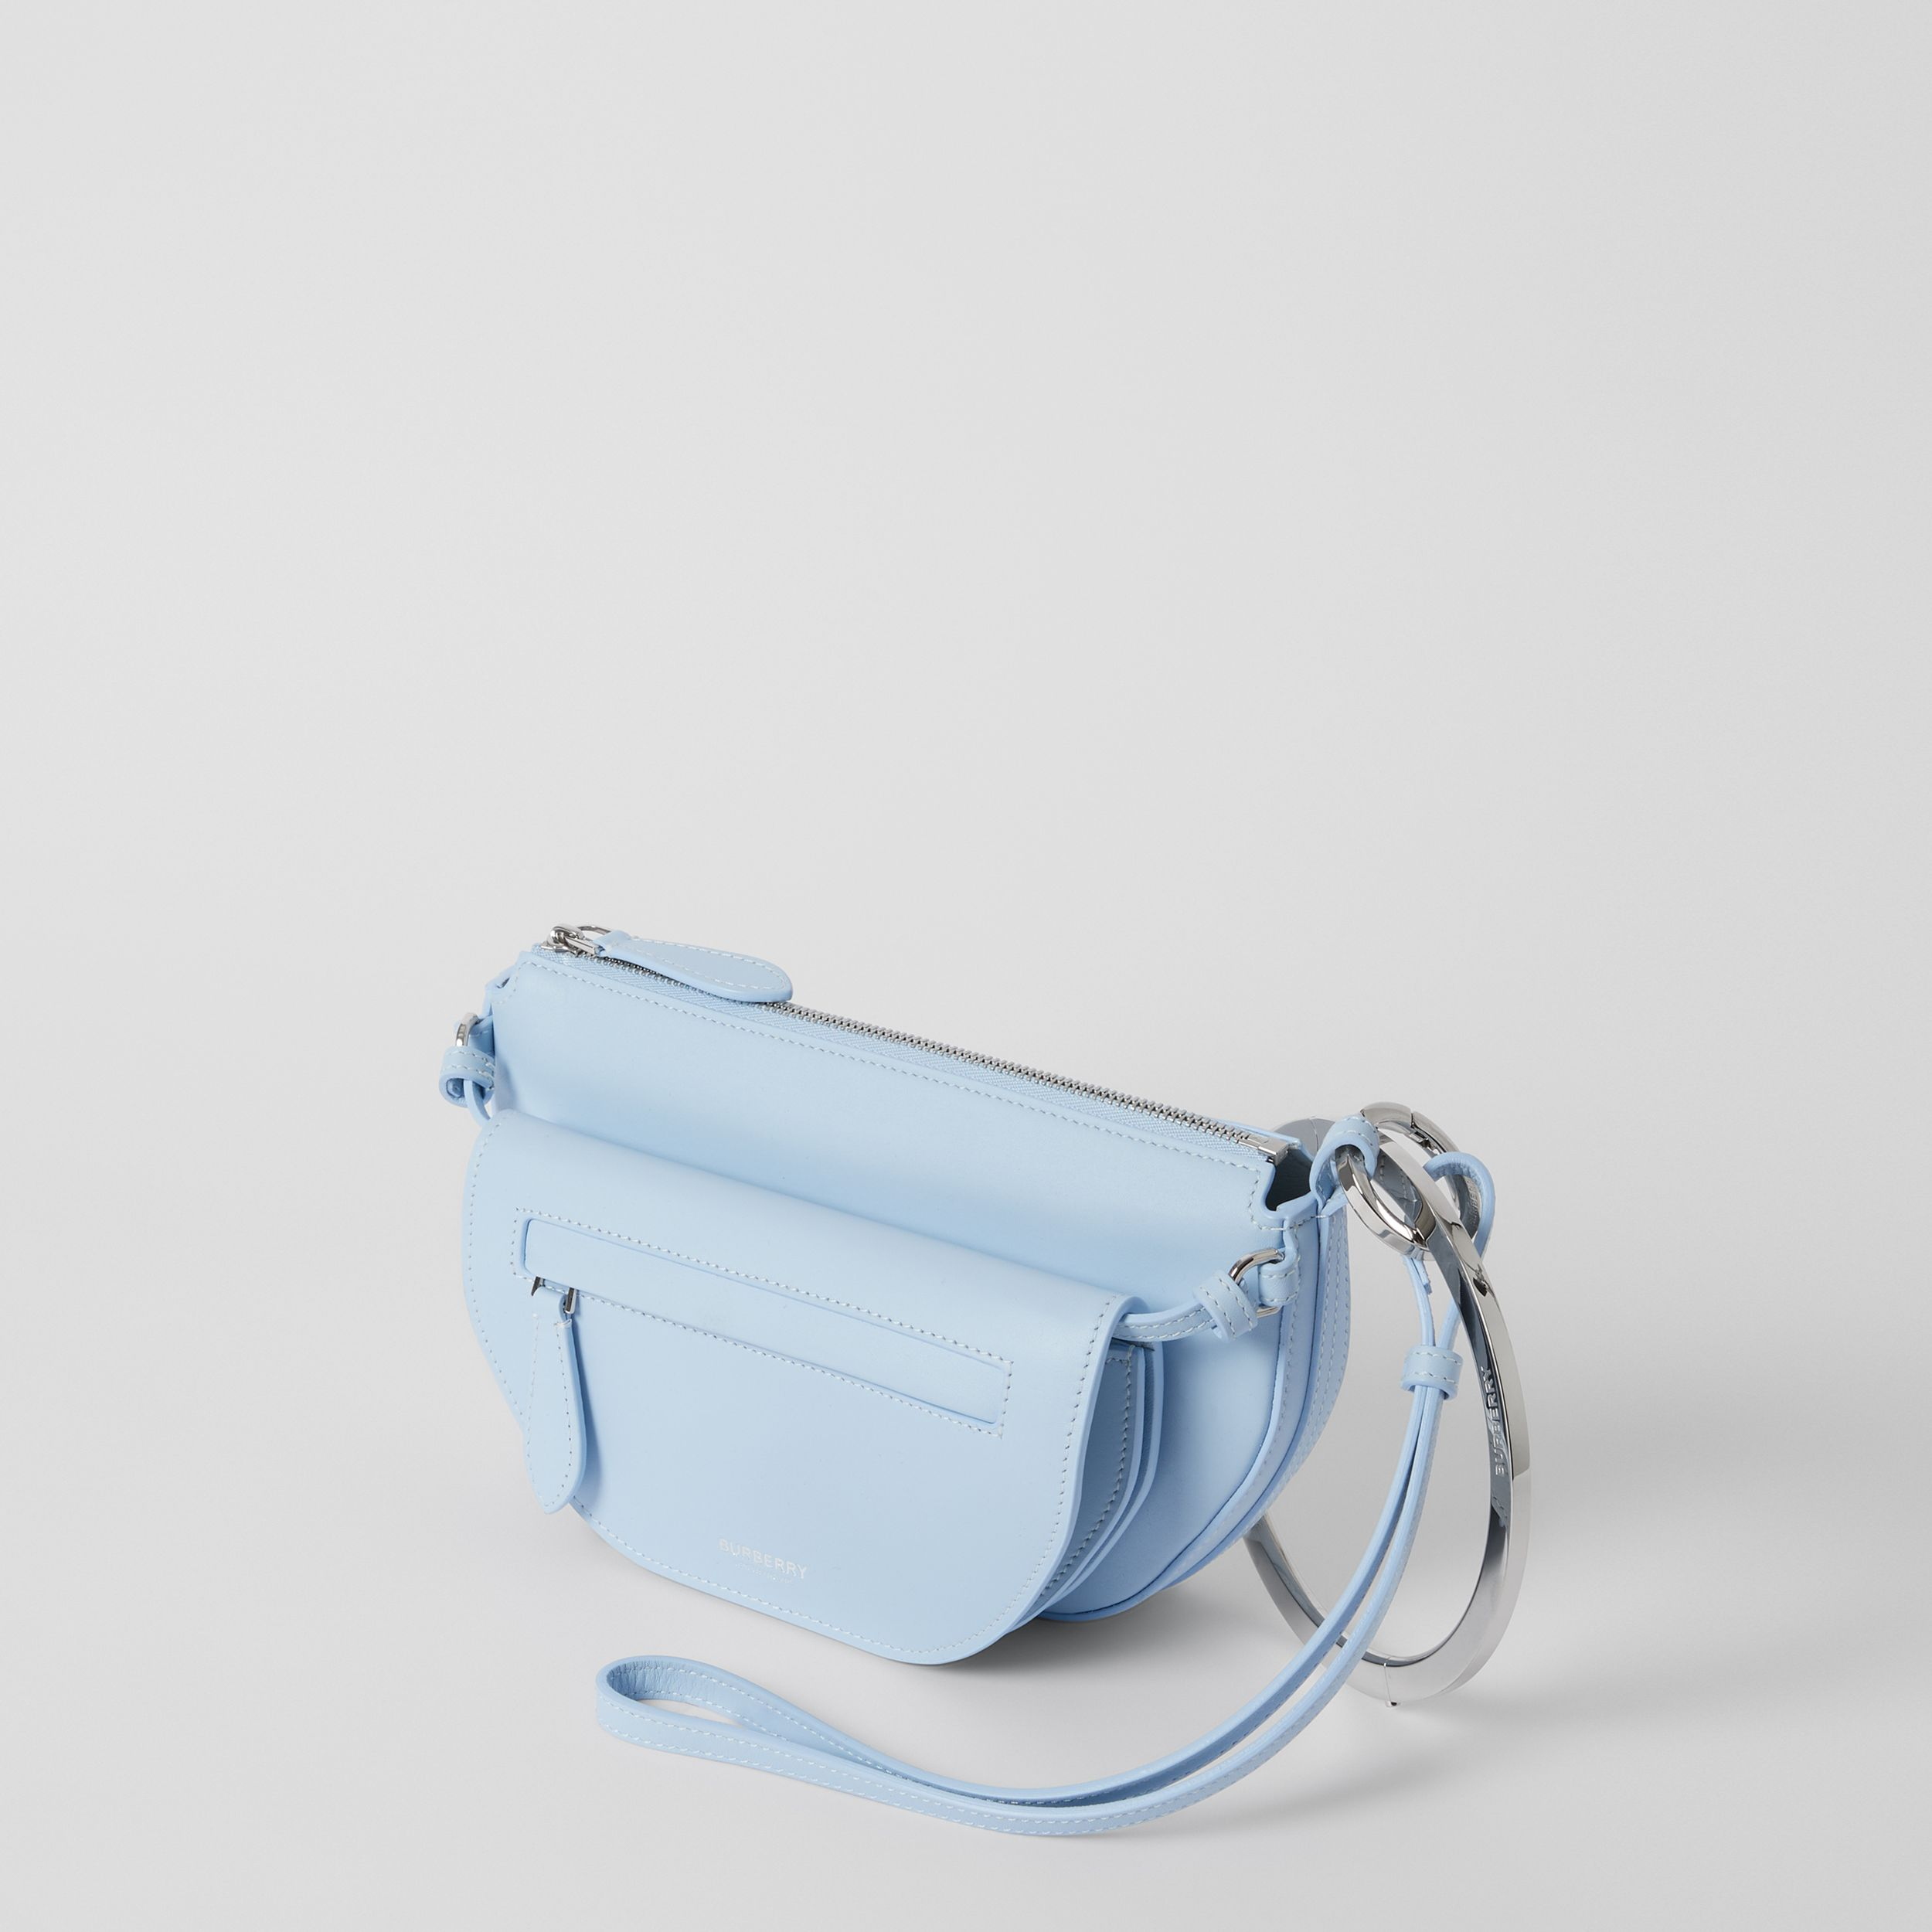 Mini Leather Double Olympia Bag in Pale Blue - Women | Burberry - 4